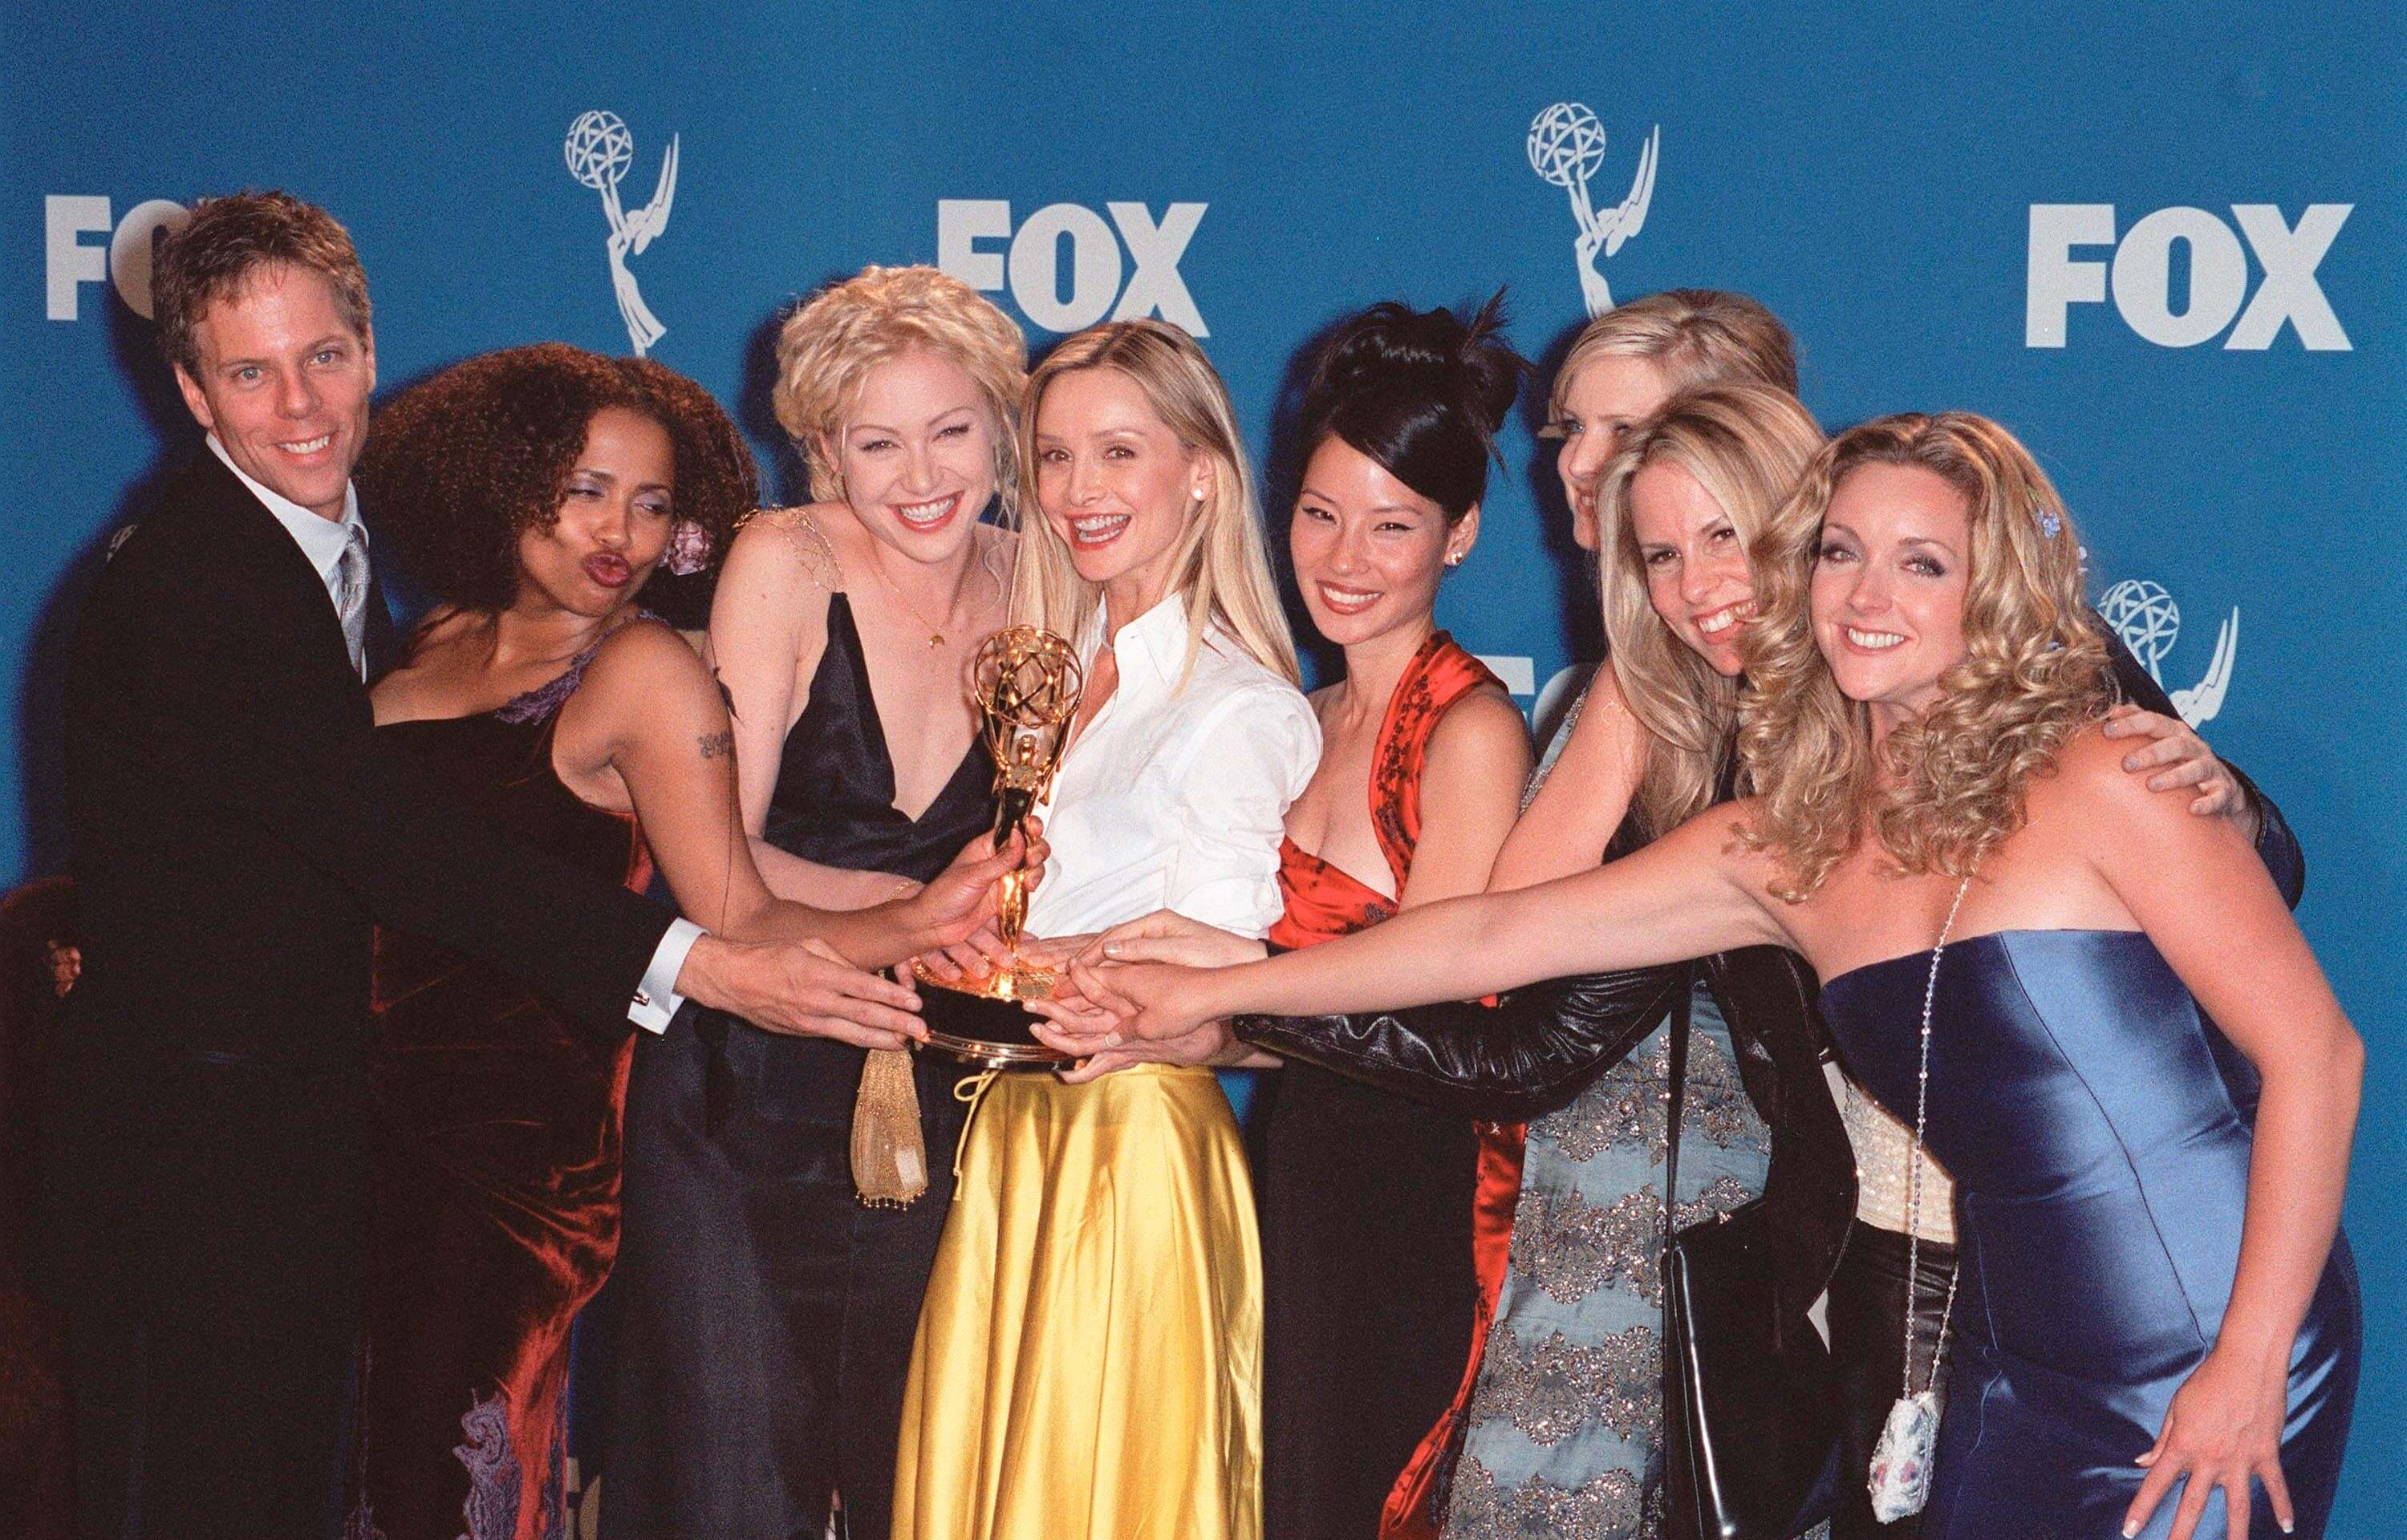 The Ally McBeal cast, including Calista Flockhart and Lucy Liu, at the 51st Annual Emmy Awards in Los Angeles where the show won the Best Comedy Series Award. Photo by Paul Smith / Featureflash.